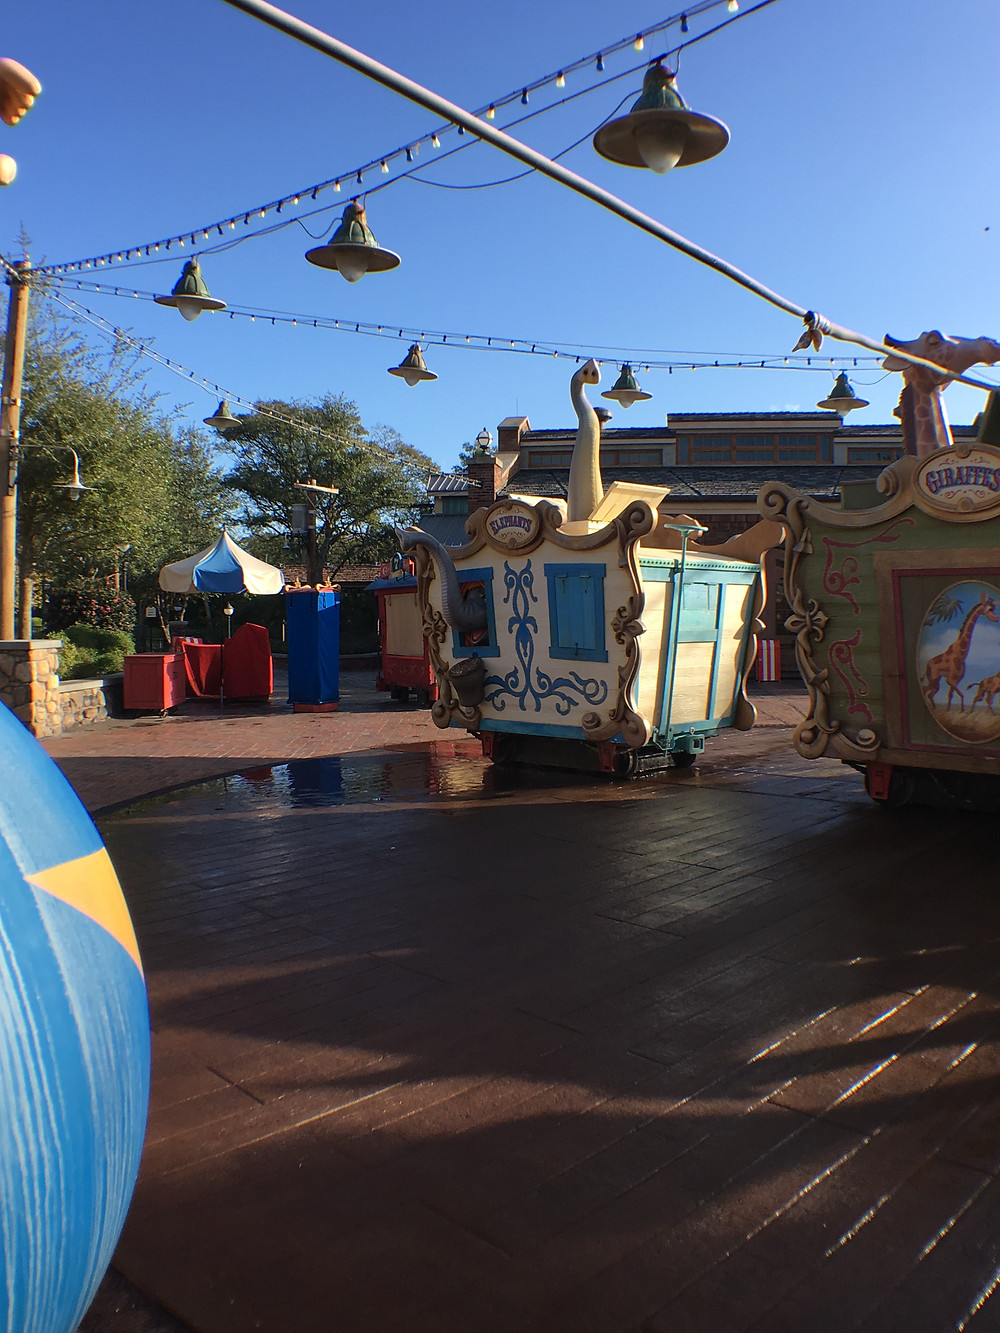 Casey Jr. Splash 'N Soak Station